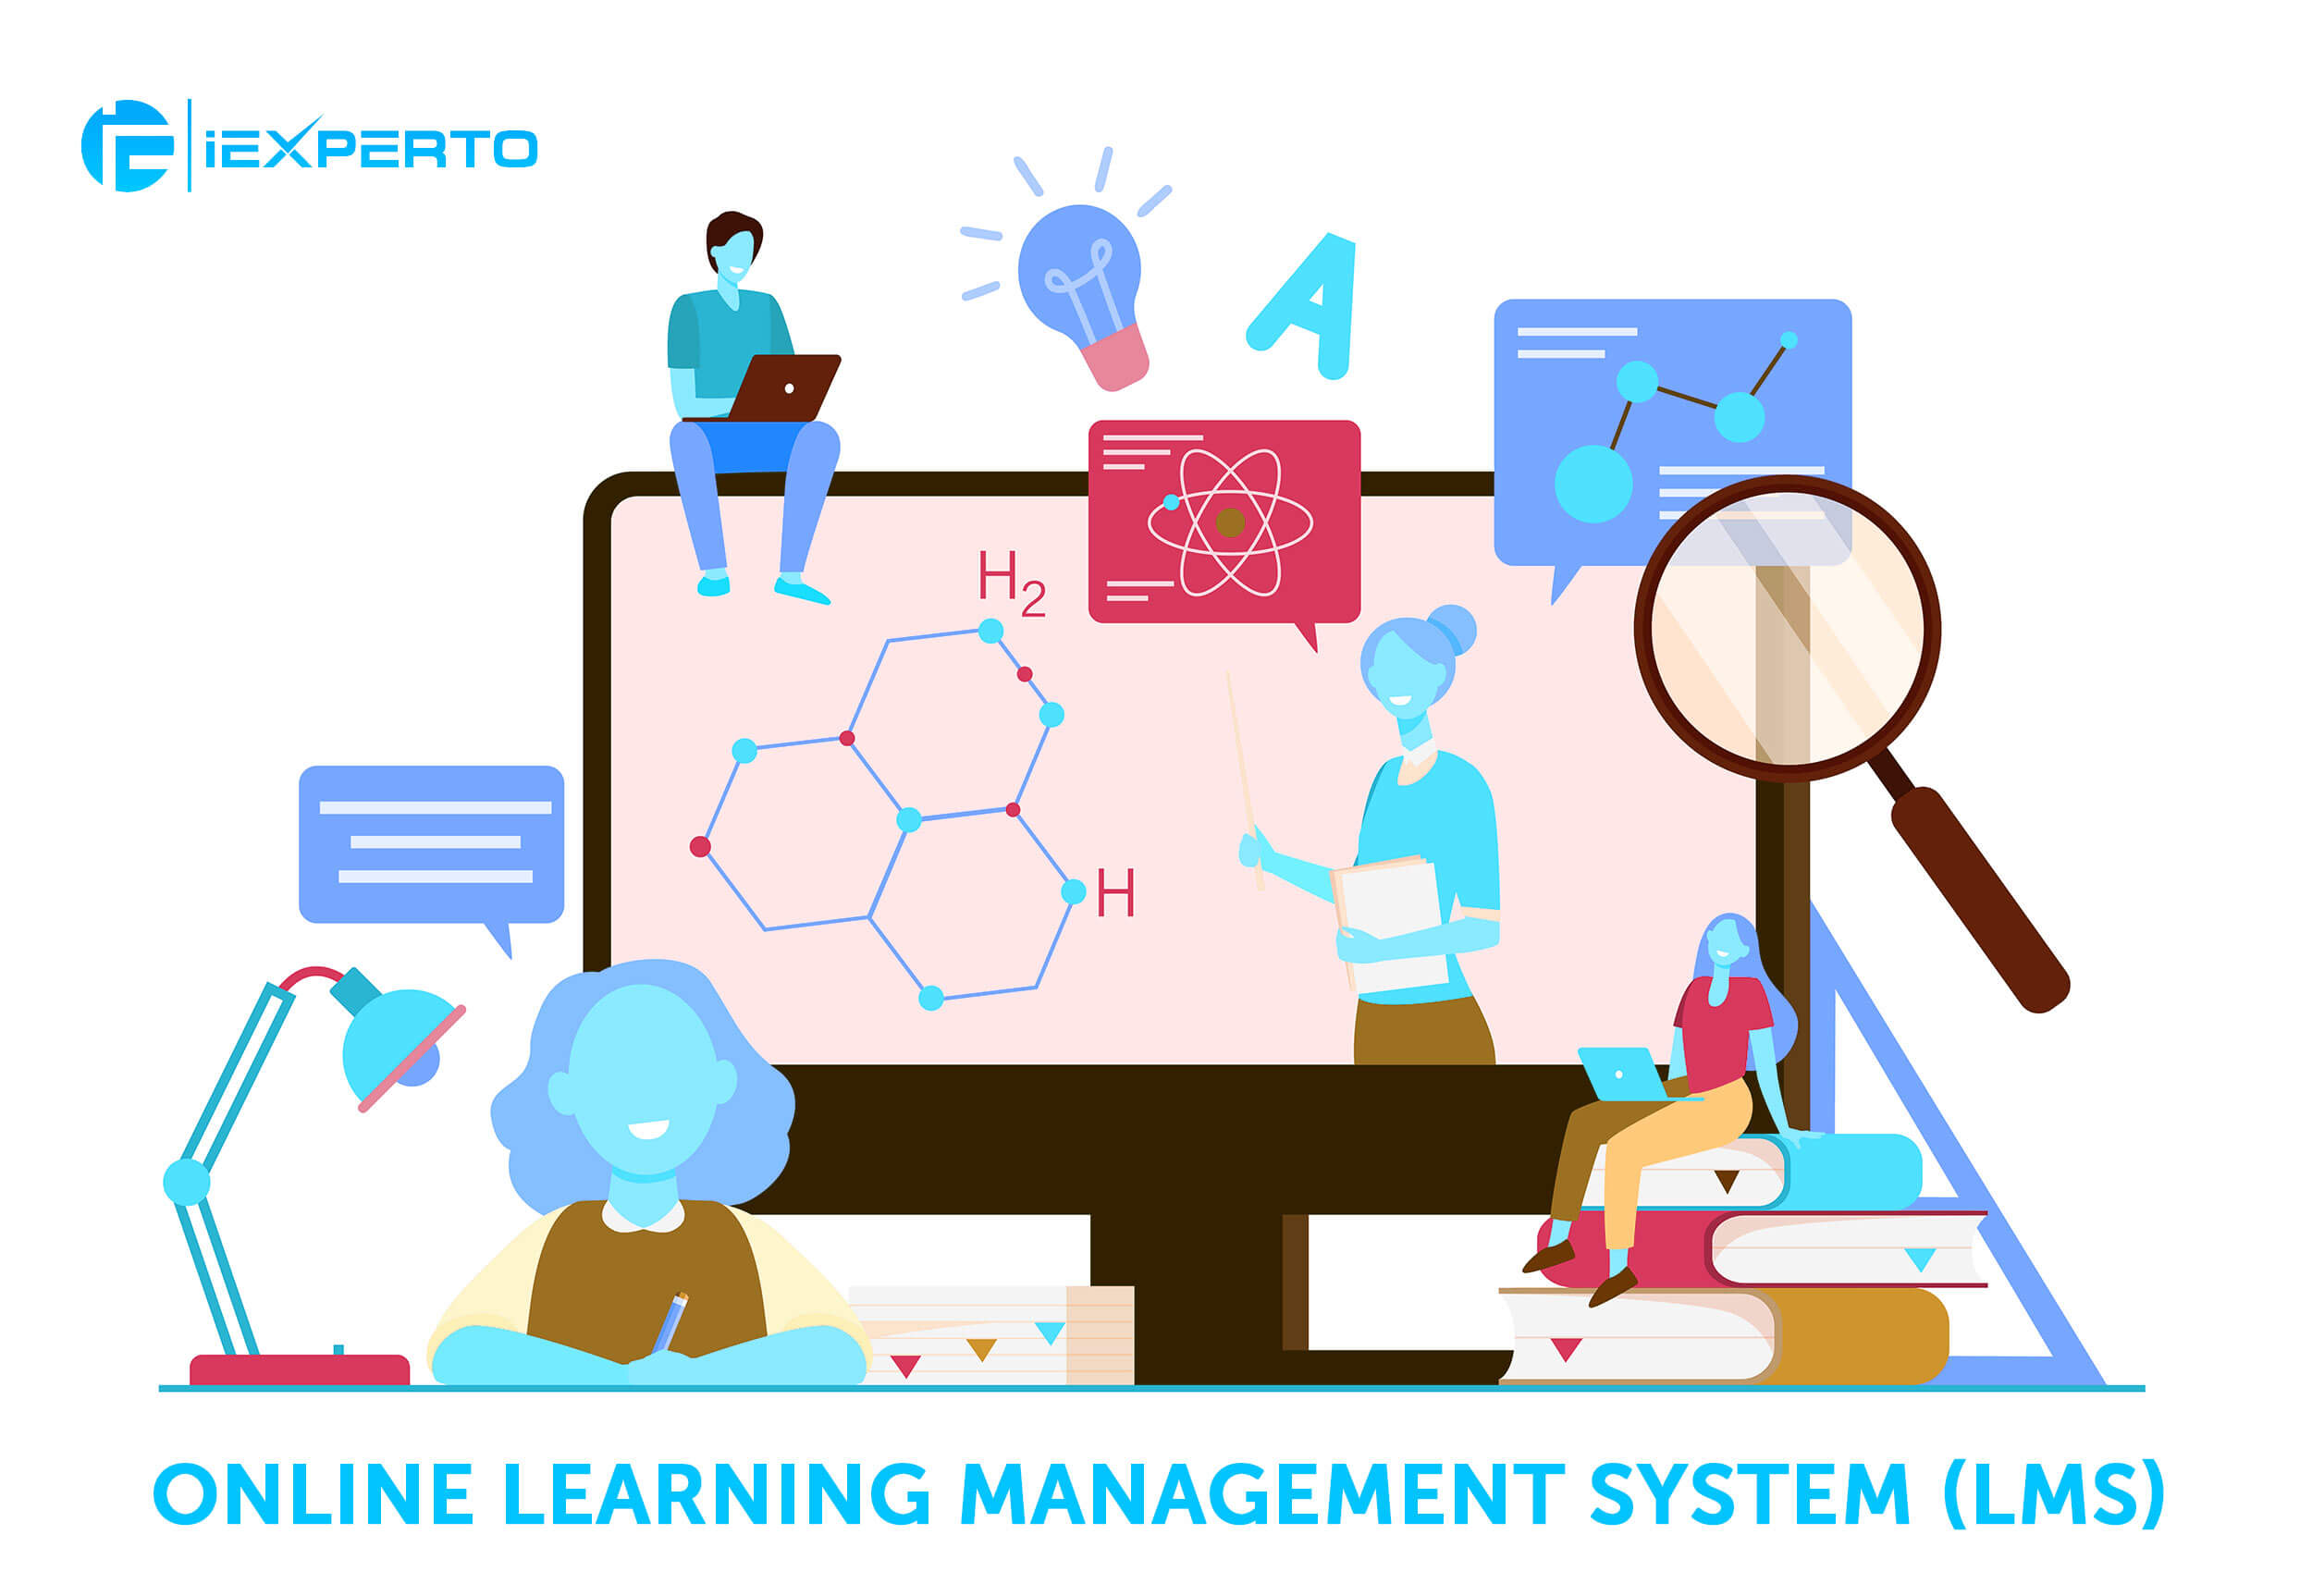 How To Build an Online Learning Management System (LMS) Without Breaking the Bank